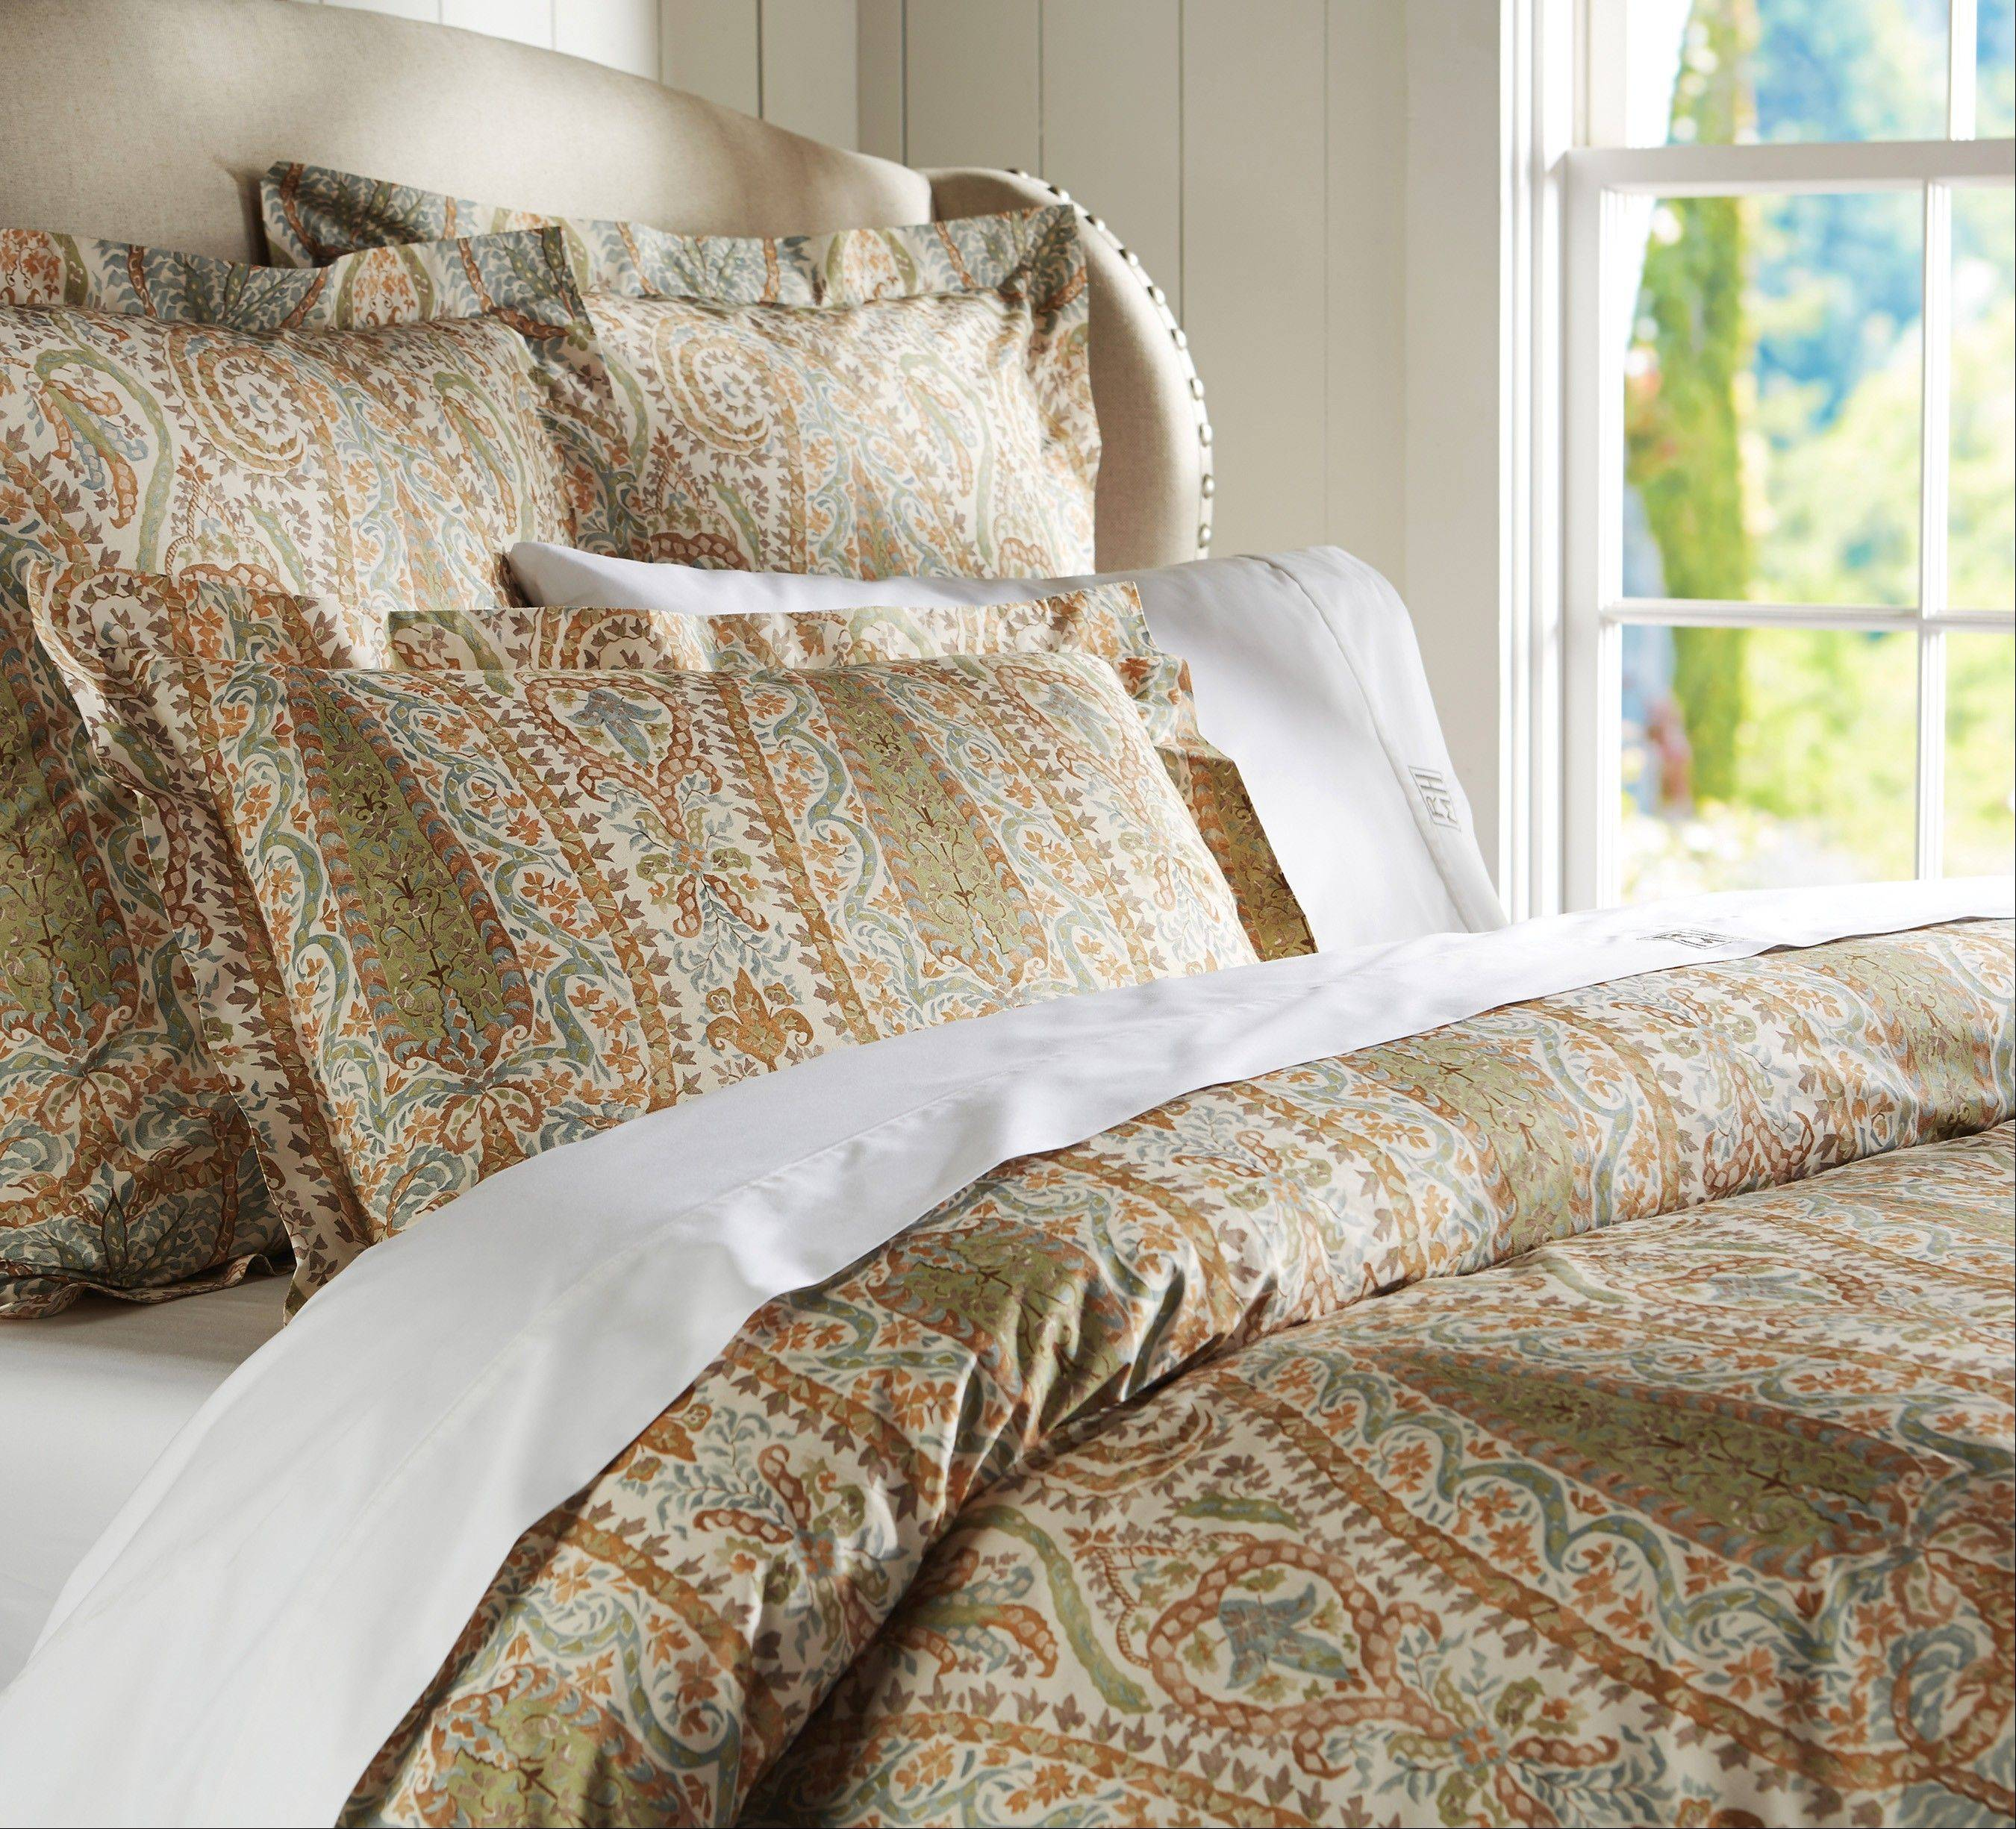 This Agatha bedding set comes in a blue or red color scheme. Paisleys and other rich patterns are popular in textiles for fall 2013.